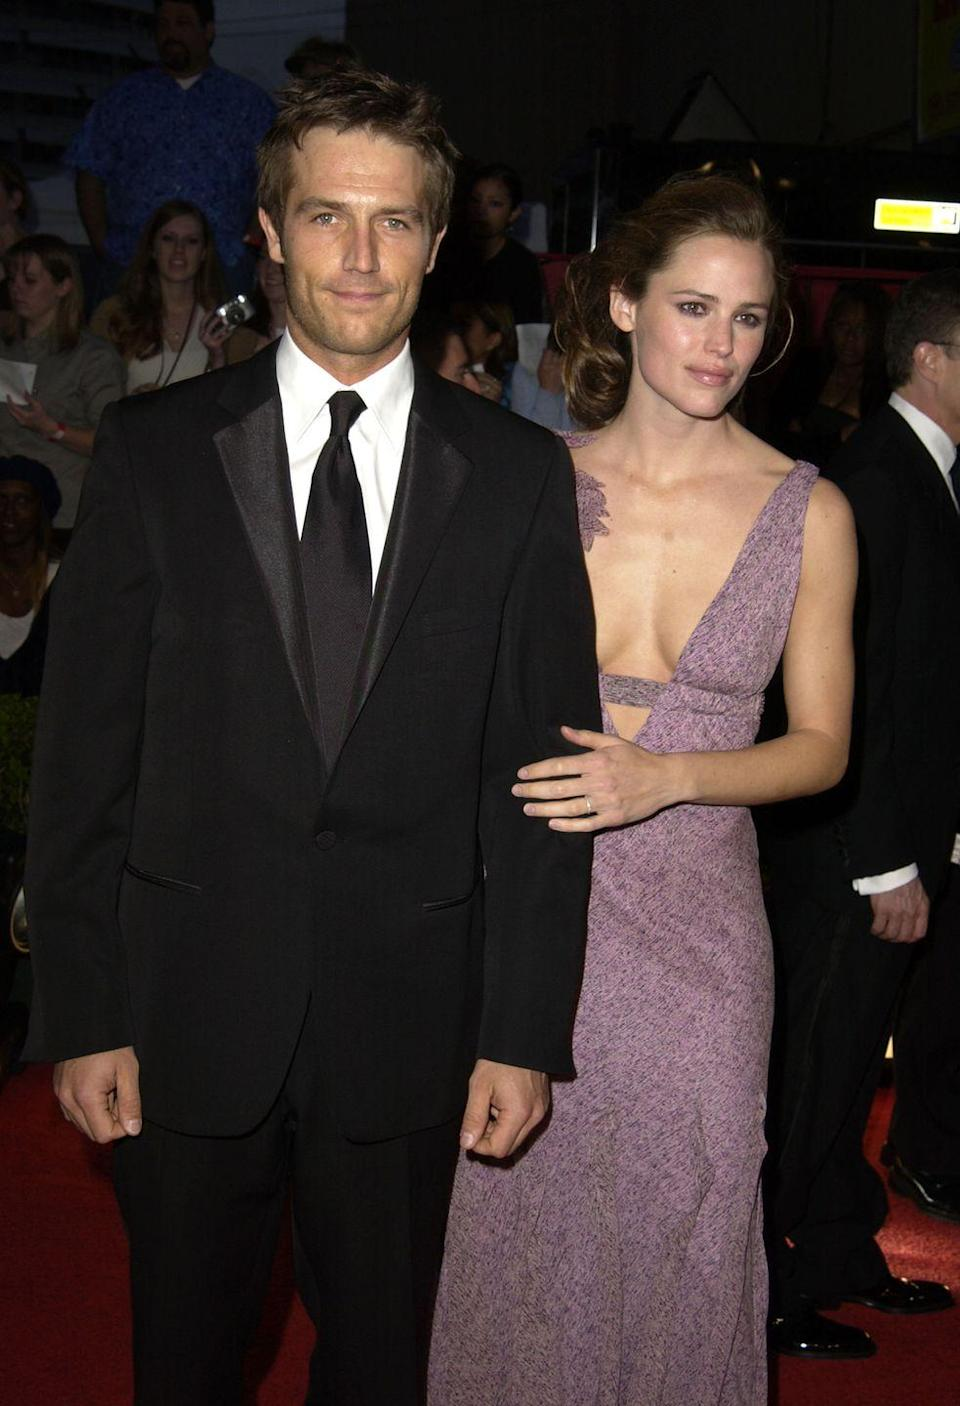 <p>Garner and Vartan played a couple alongside one another in the ABC spy drama <em>Alias</em>, and actually dated for a few months. After breaking up in 2004, the co-stars stayed friends and also proved they could continue a professional relationship sticking to their<em> Alias </em>roles. </p>